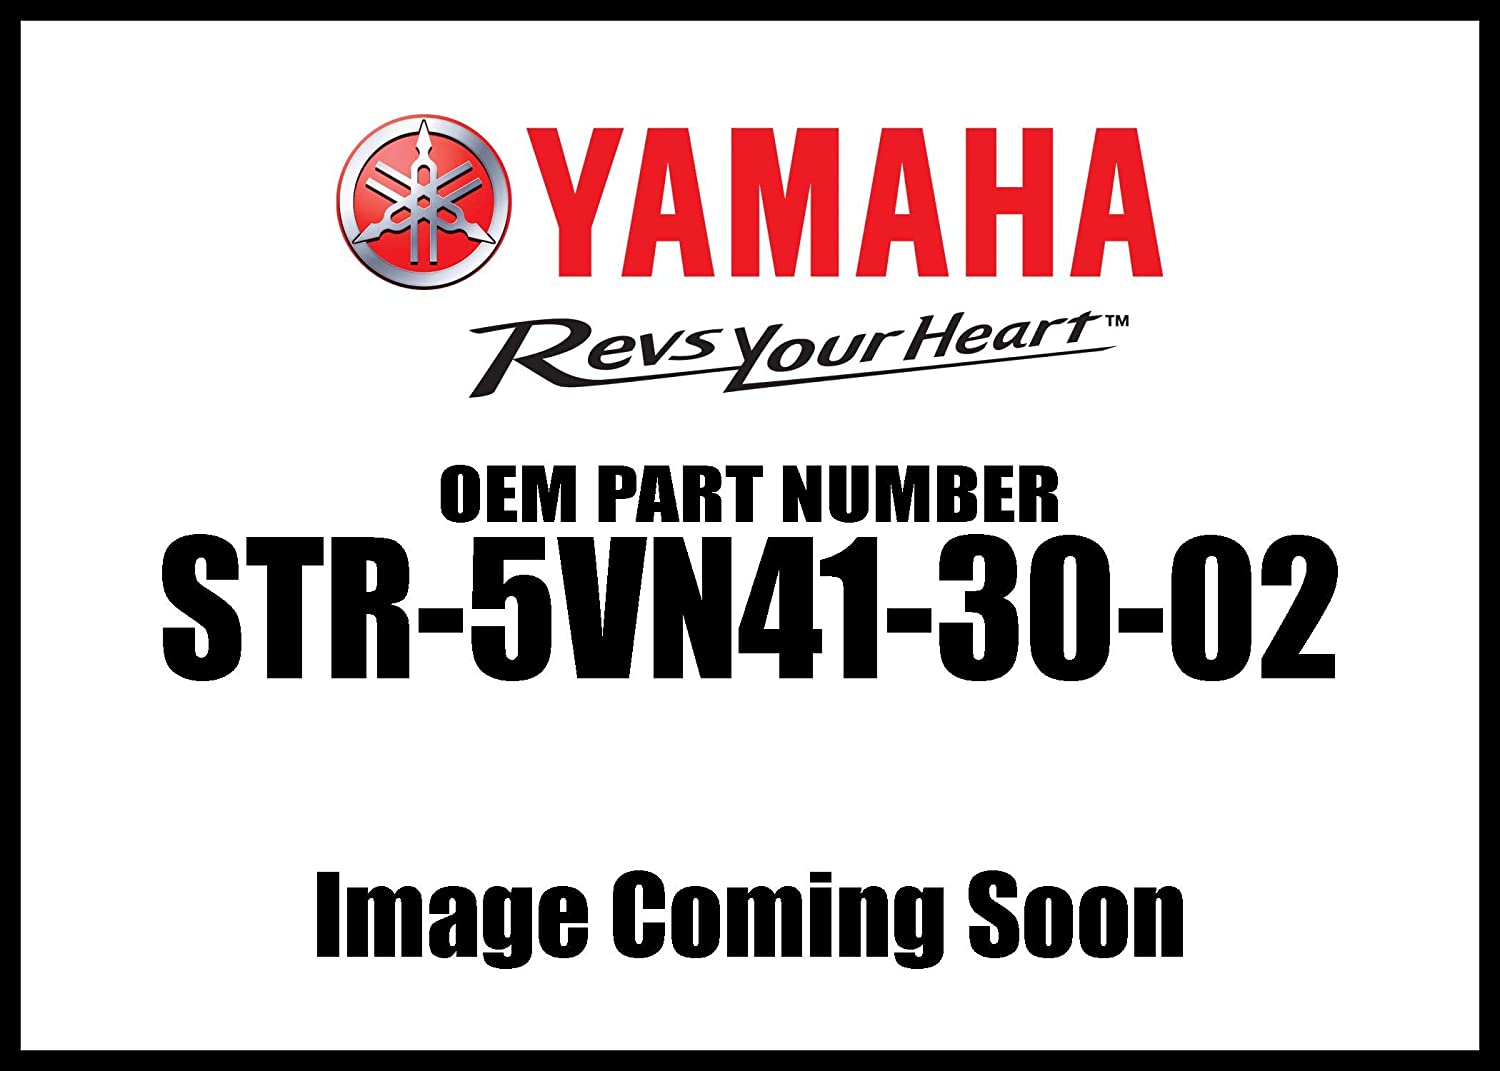 Yamaha STR-5VN41-30-02 Quick-Release Backrest Tall Upright for Yamaha Road Star